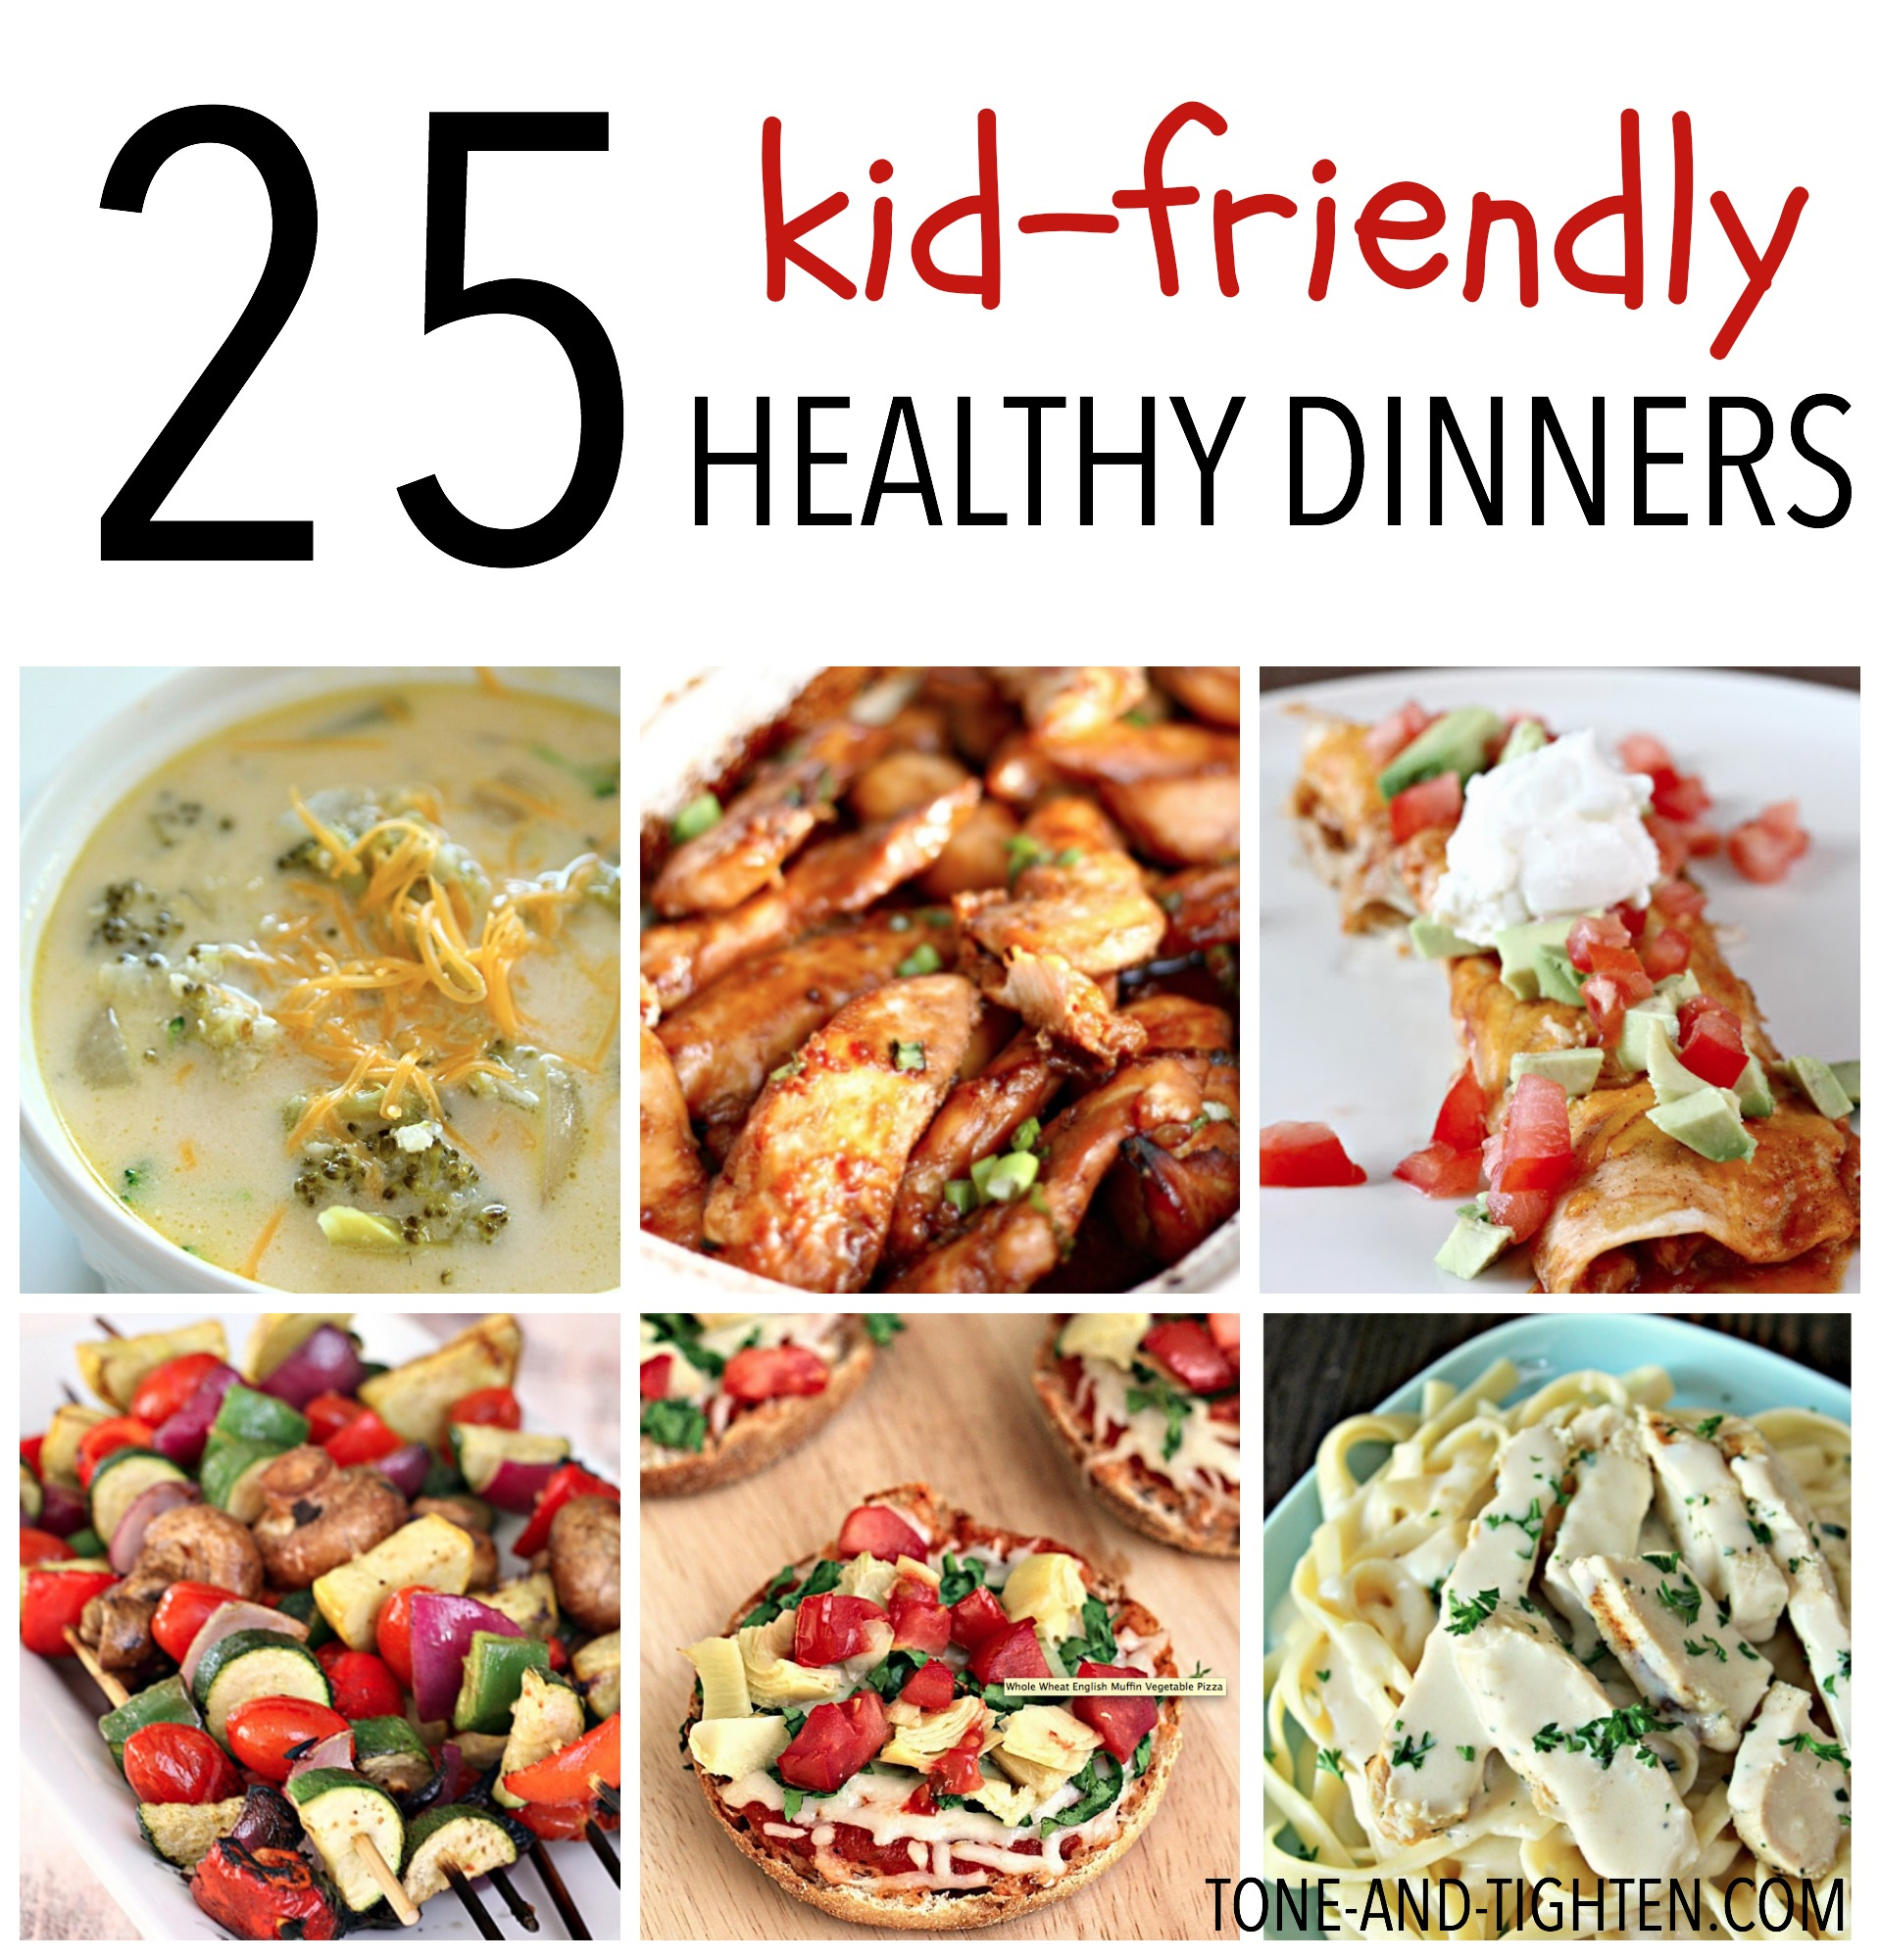 25 Kid-Friendly Healthy Dinners